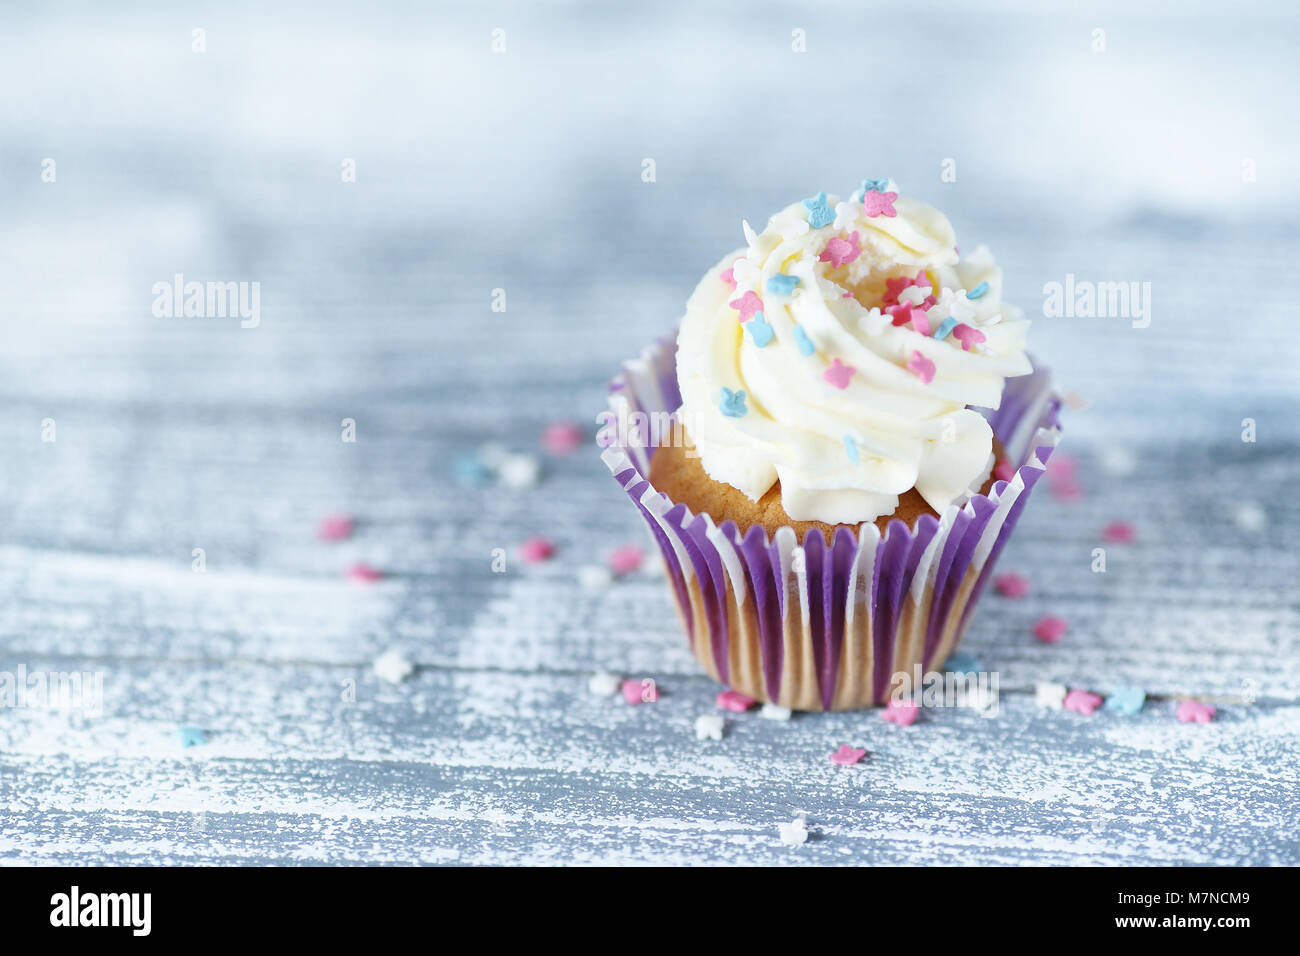 Biscuit cupcakes in paper form - Stock Image